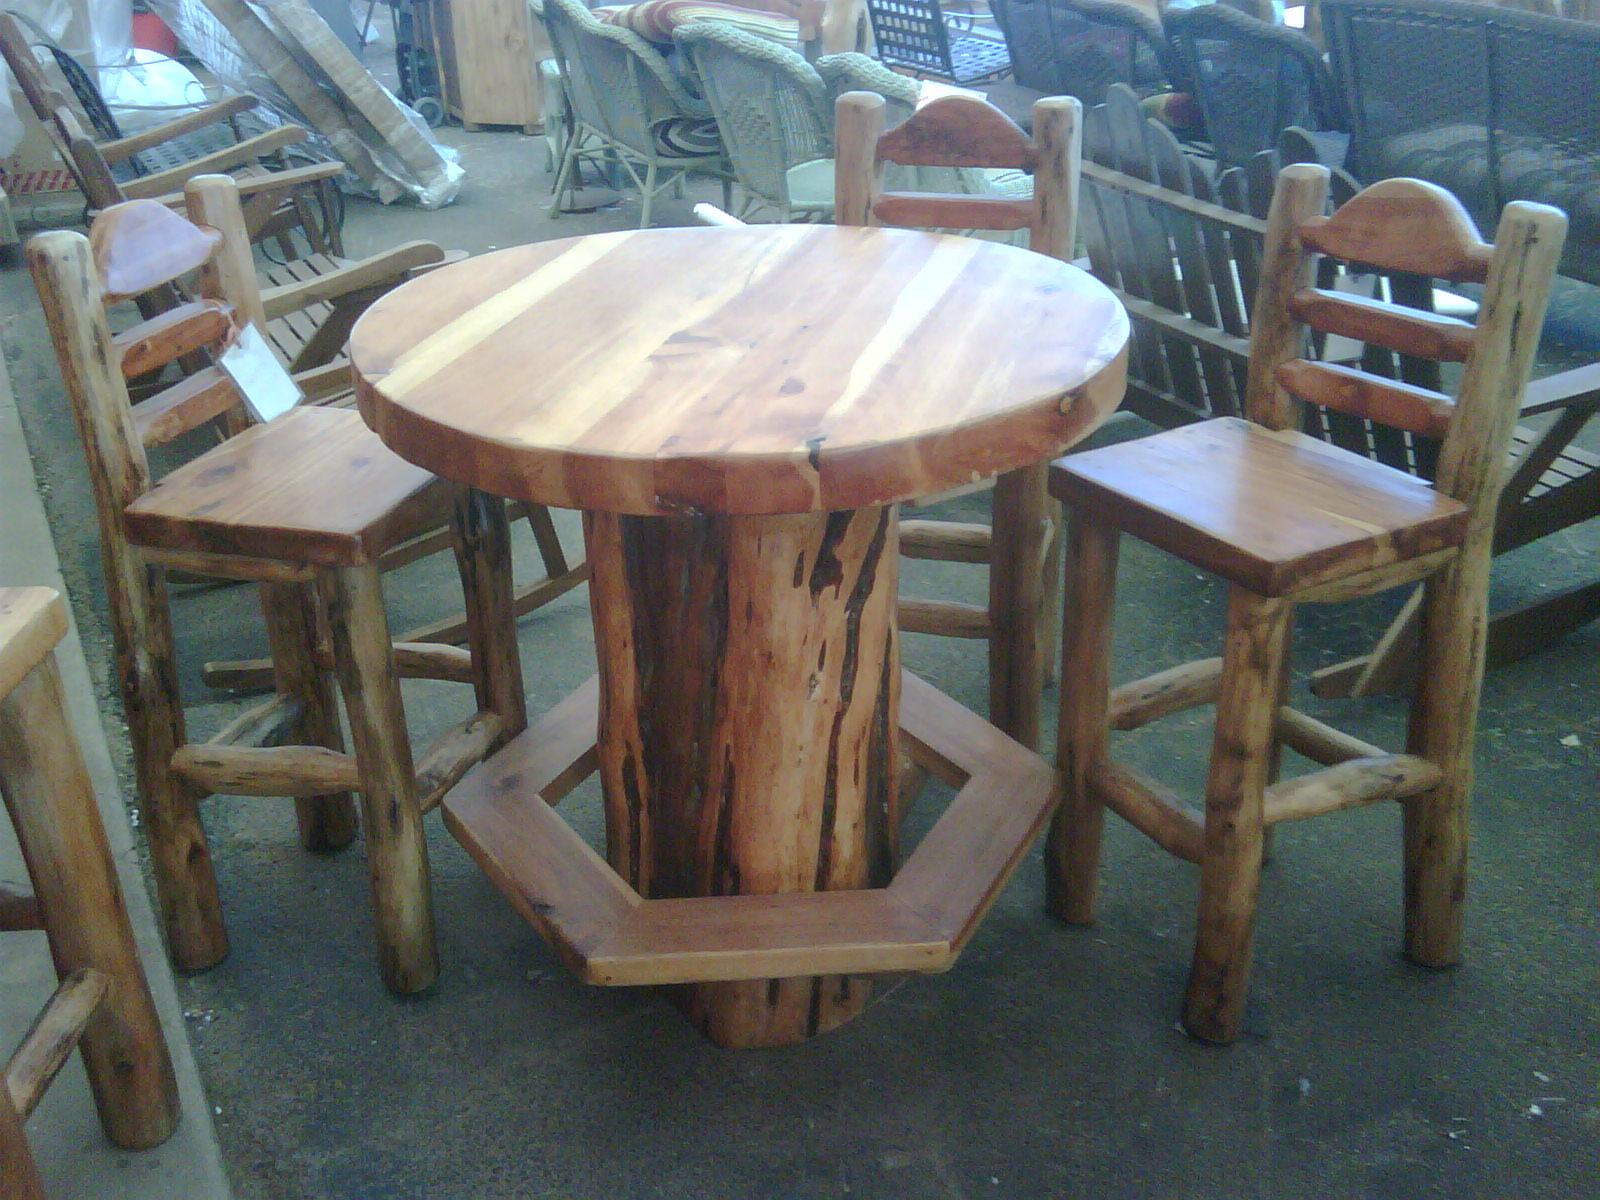 Rustic Bar Table And Chairs Recycled Wood Bar Table Rustic Indoor Pub And Bistro Furniture